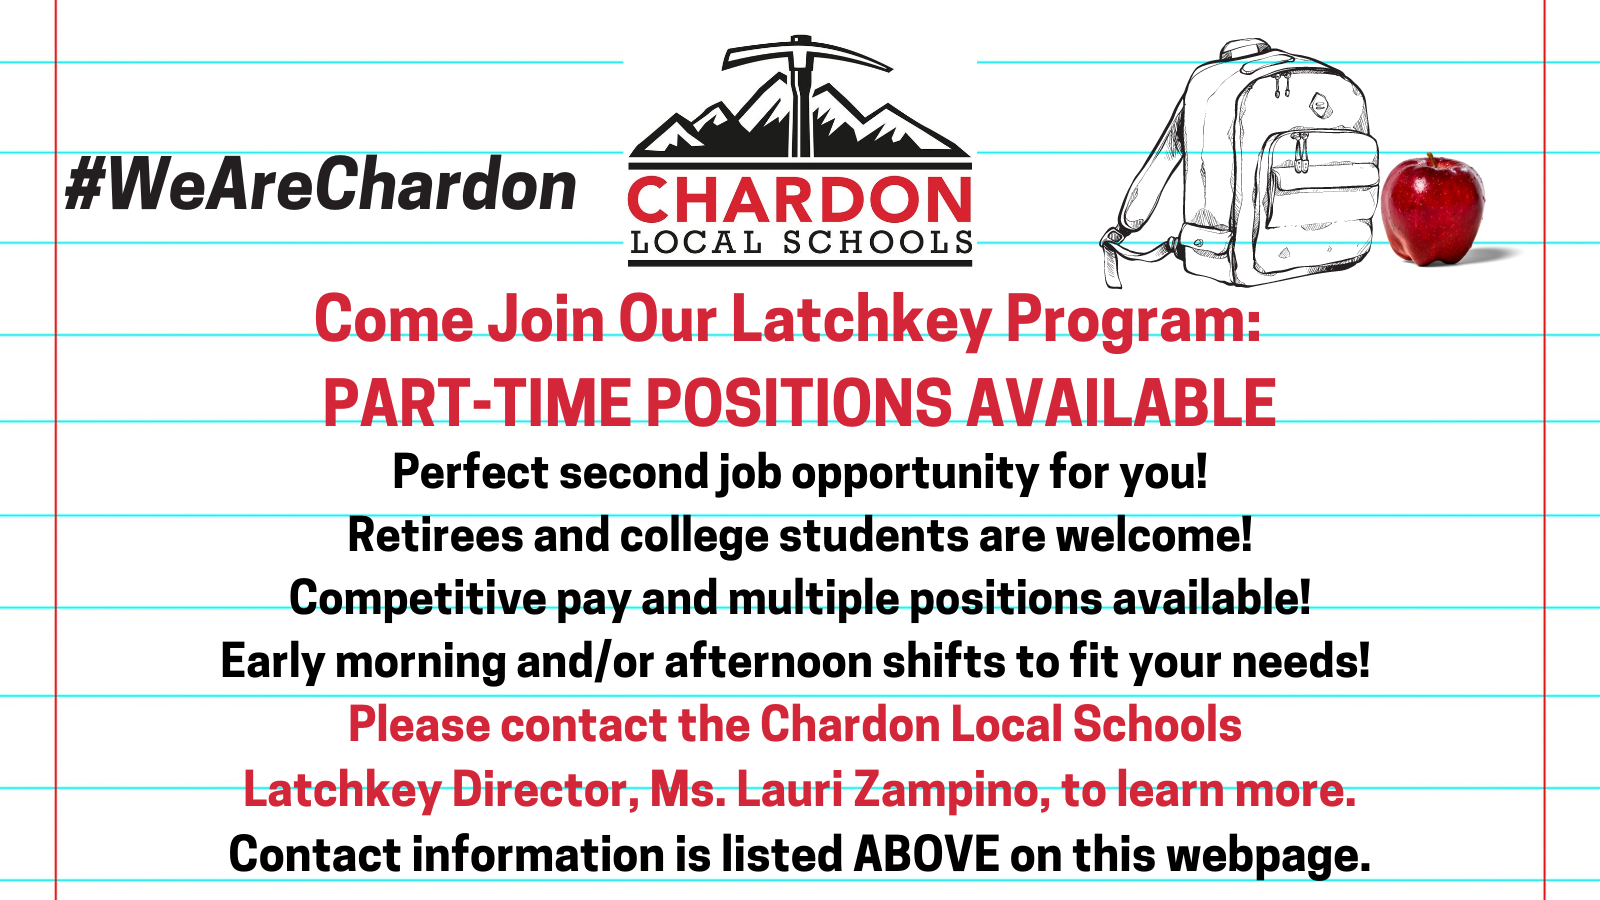 Chardon Local Schools Come Join Our Latchkey Program! PART-TIME POSITIONS AVAILABLE Perfect second job opportunity for you! Retirees and college students are welcome! Competitive pay and multiple positions available! Early morning and/or afternoon shifts to fit your needs! Please contact the Chardon Local Schools Latchkey Director, Ms. Lauri Zampino, to learn more: Email:  lauri.zampino@chardonschools.org Ph:  440-286-0407 The goal of our Latchkey Program is to provide dependable and economical child care for working parents/guardians in a pleasant and informal atmosphere where children feel safe and accepted. The Latchkey Program operates only when school is in session.  #WeAreChardon